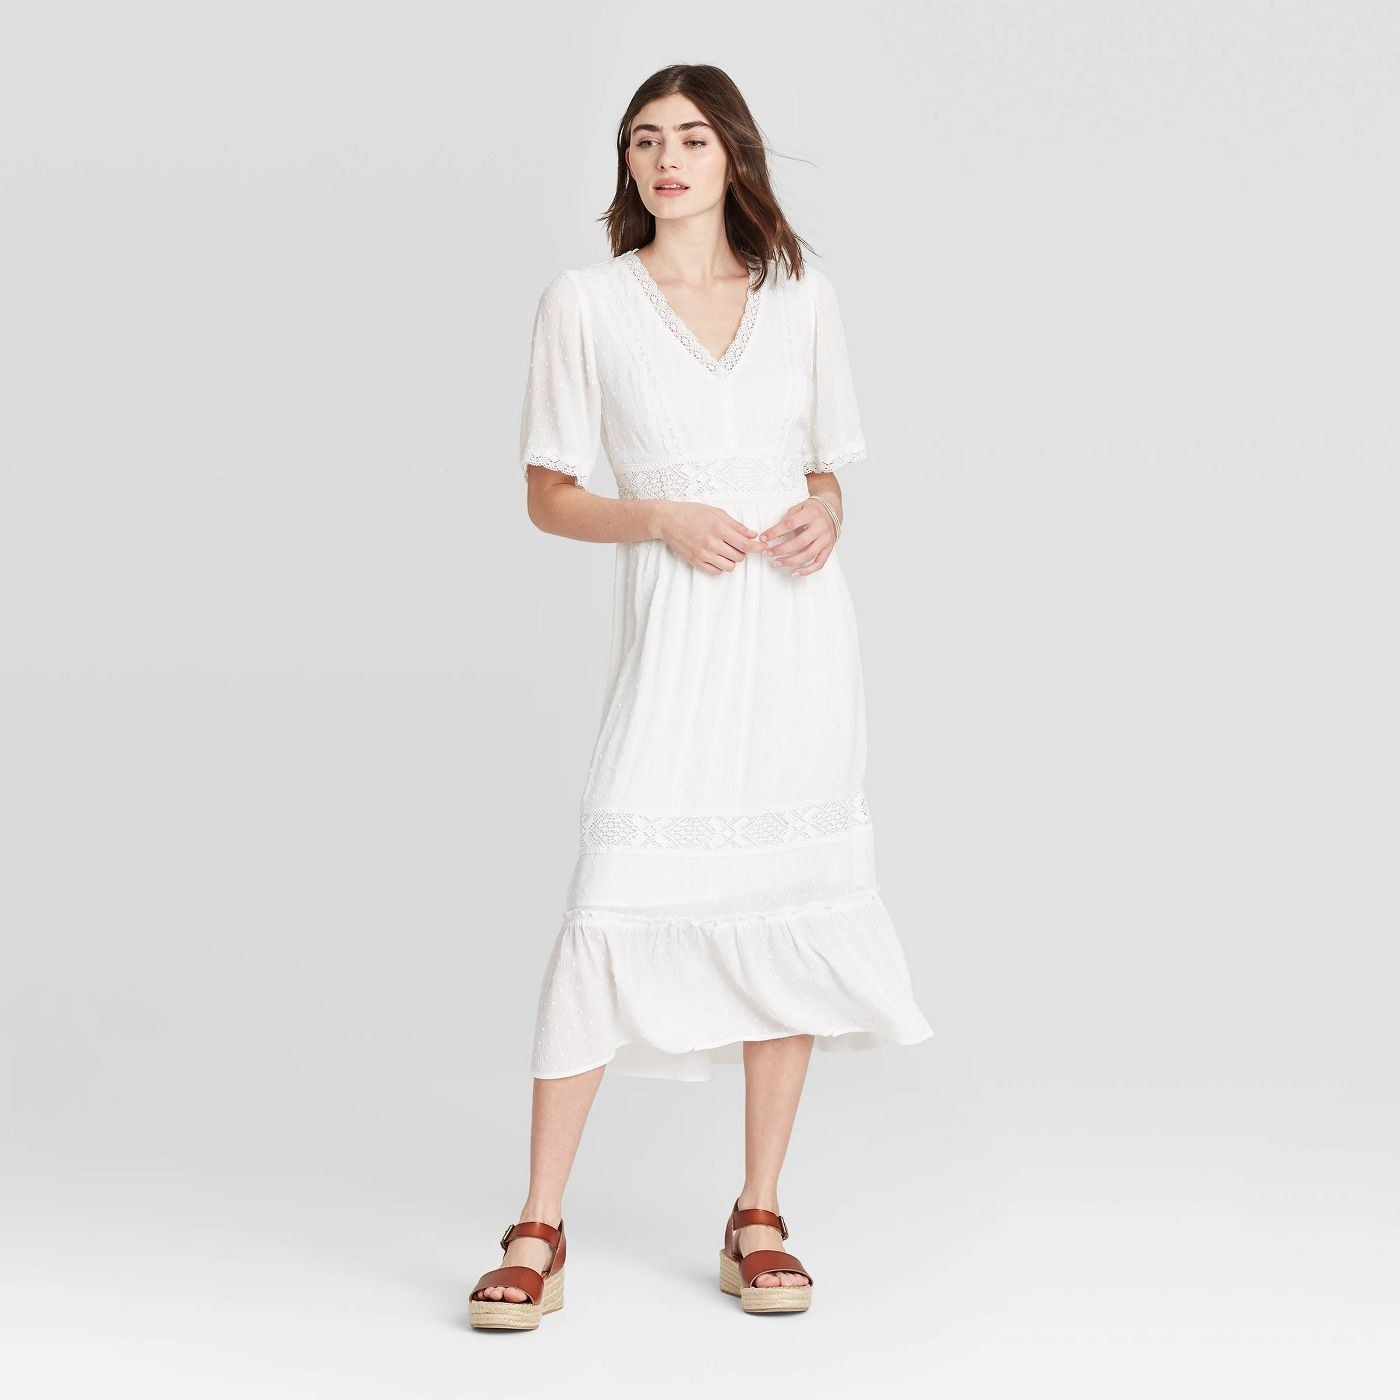 A model in a midi length dress with a short sleeve and V-neckline